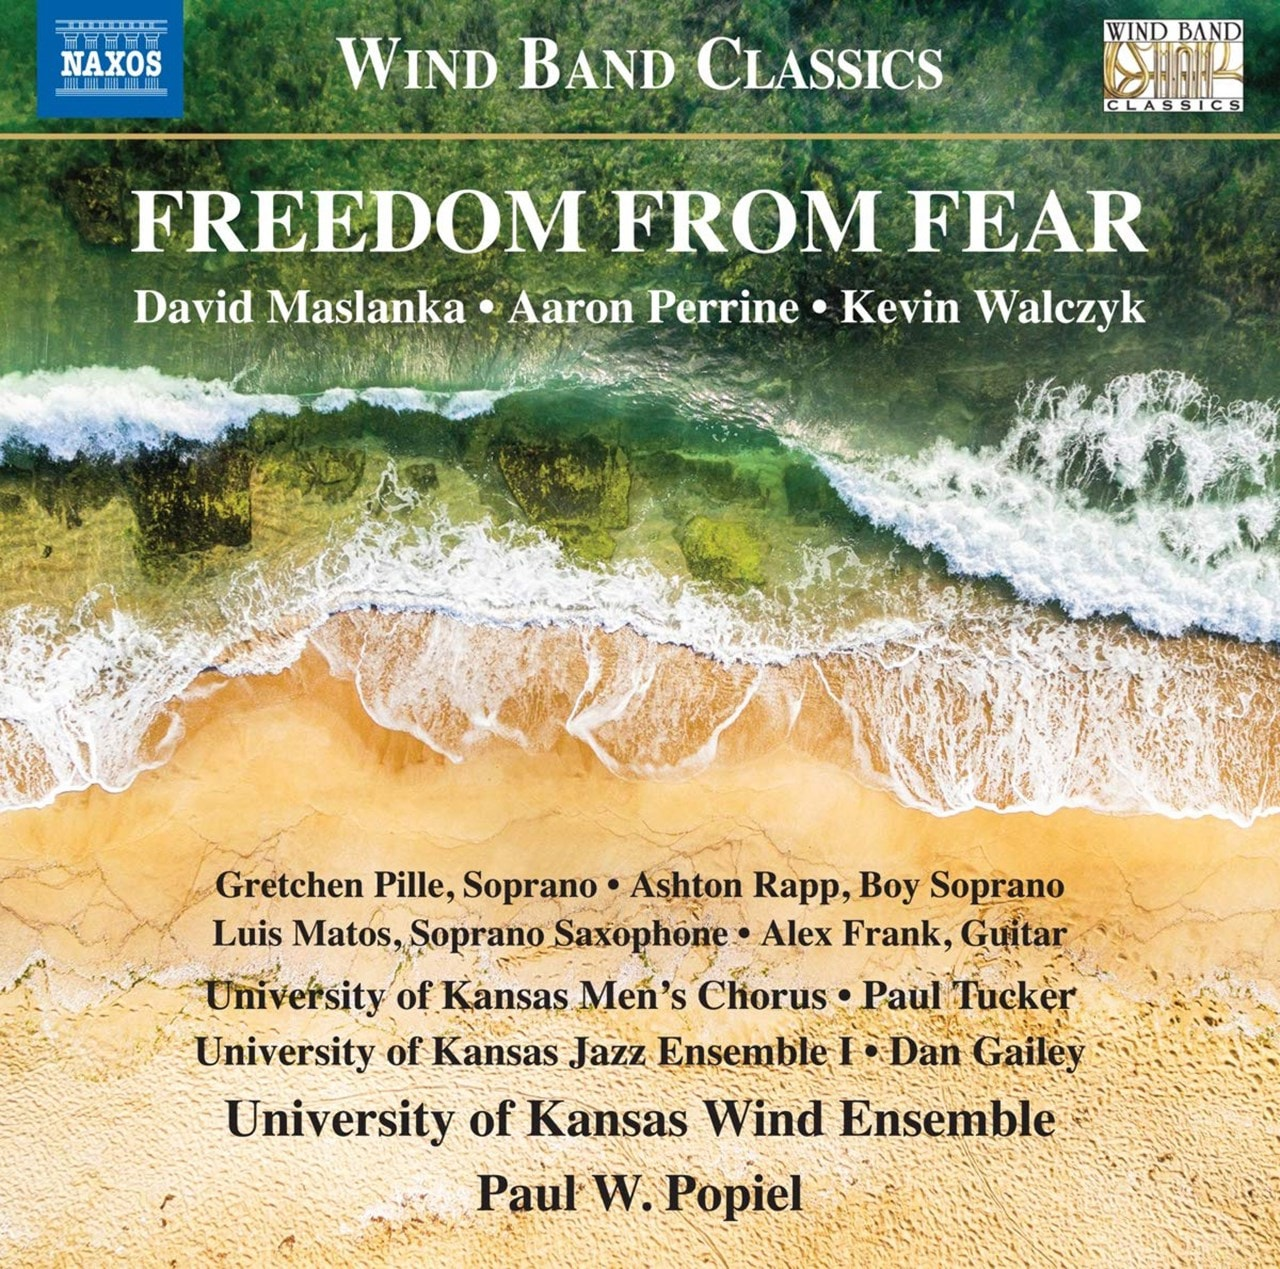 Freedom from Fear: Music for Wind Band - 1